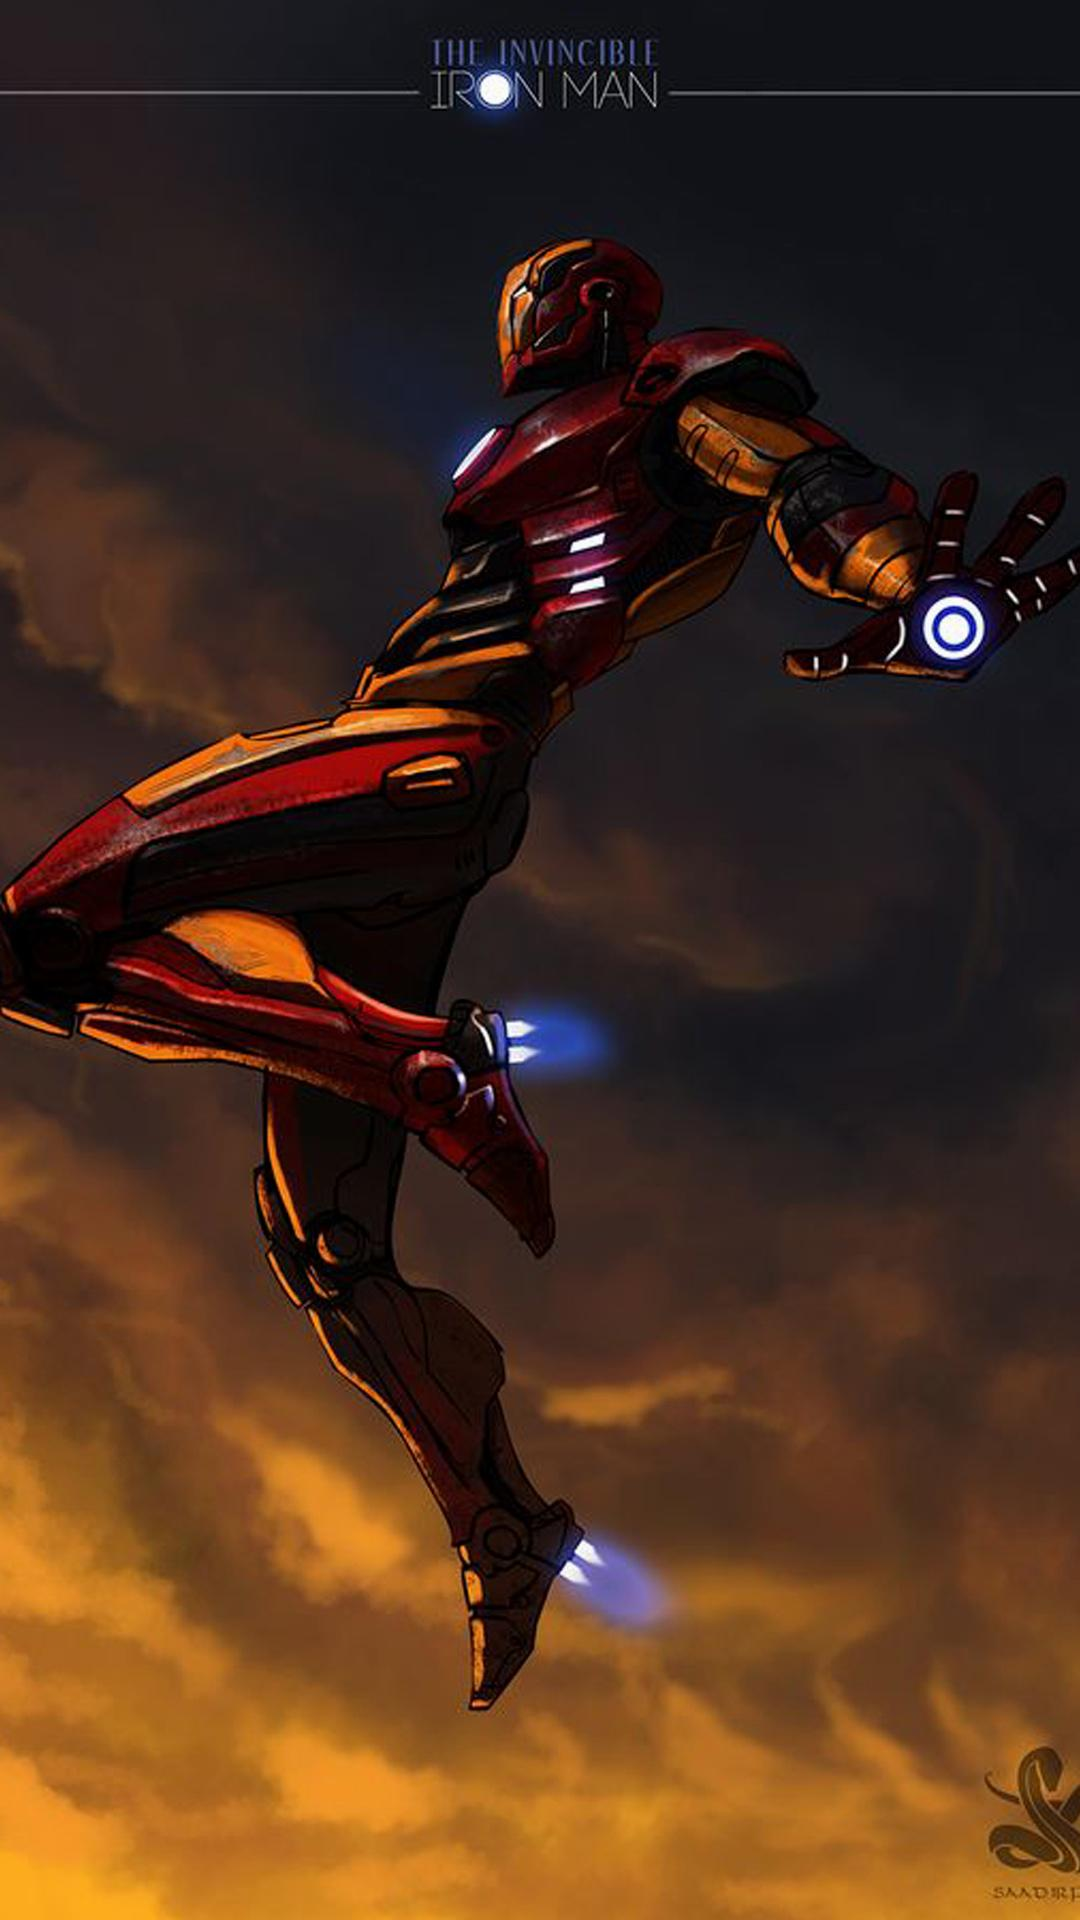 Iron man iphone wallpaper tumblr - 10 Tumblr Wallpaper For Iphone Hd10 338x600